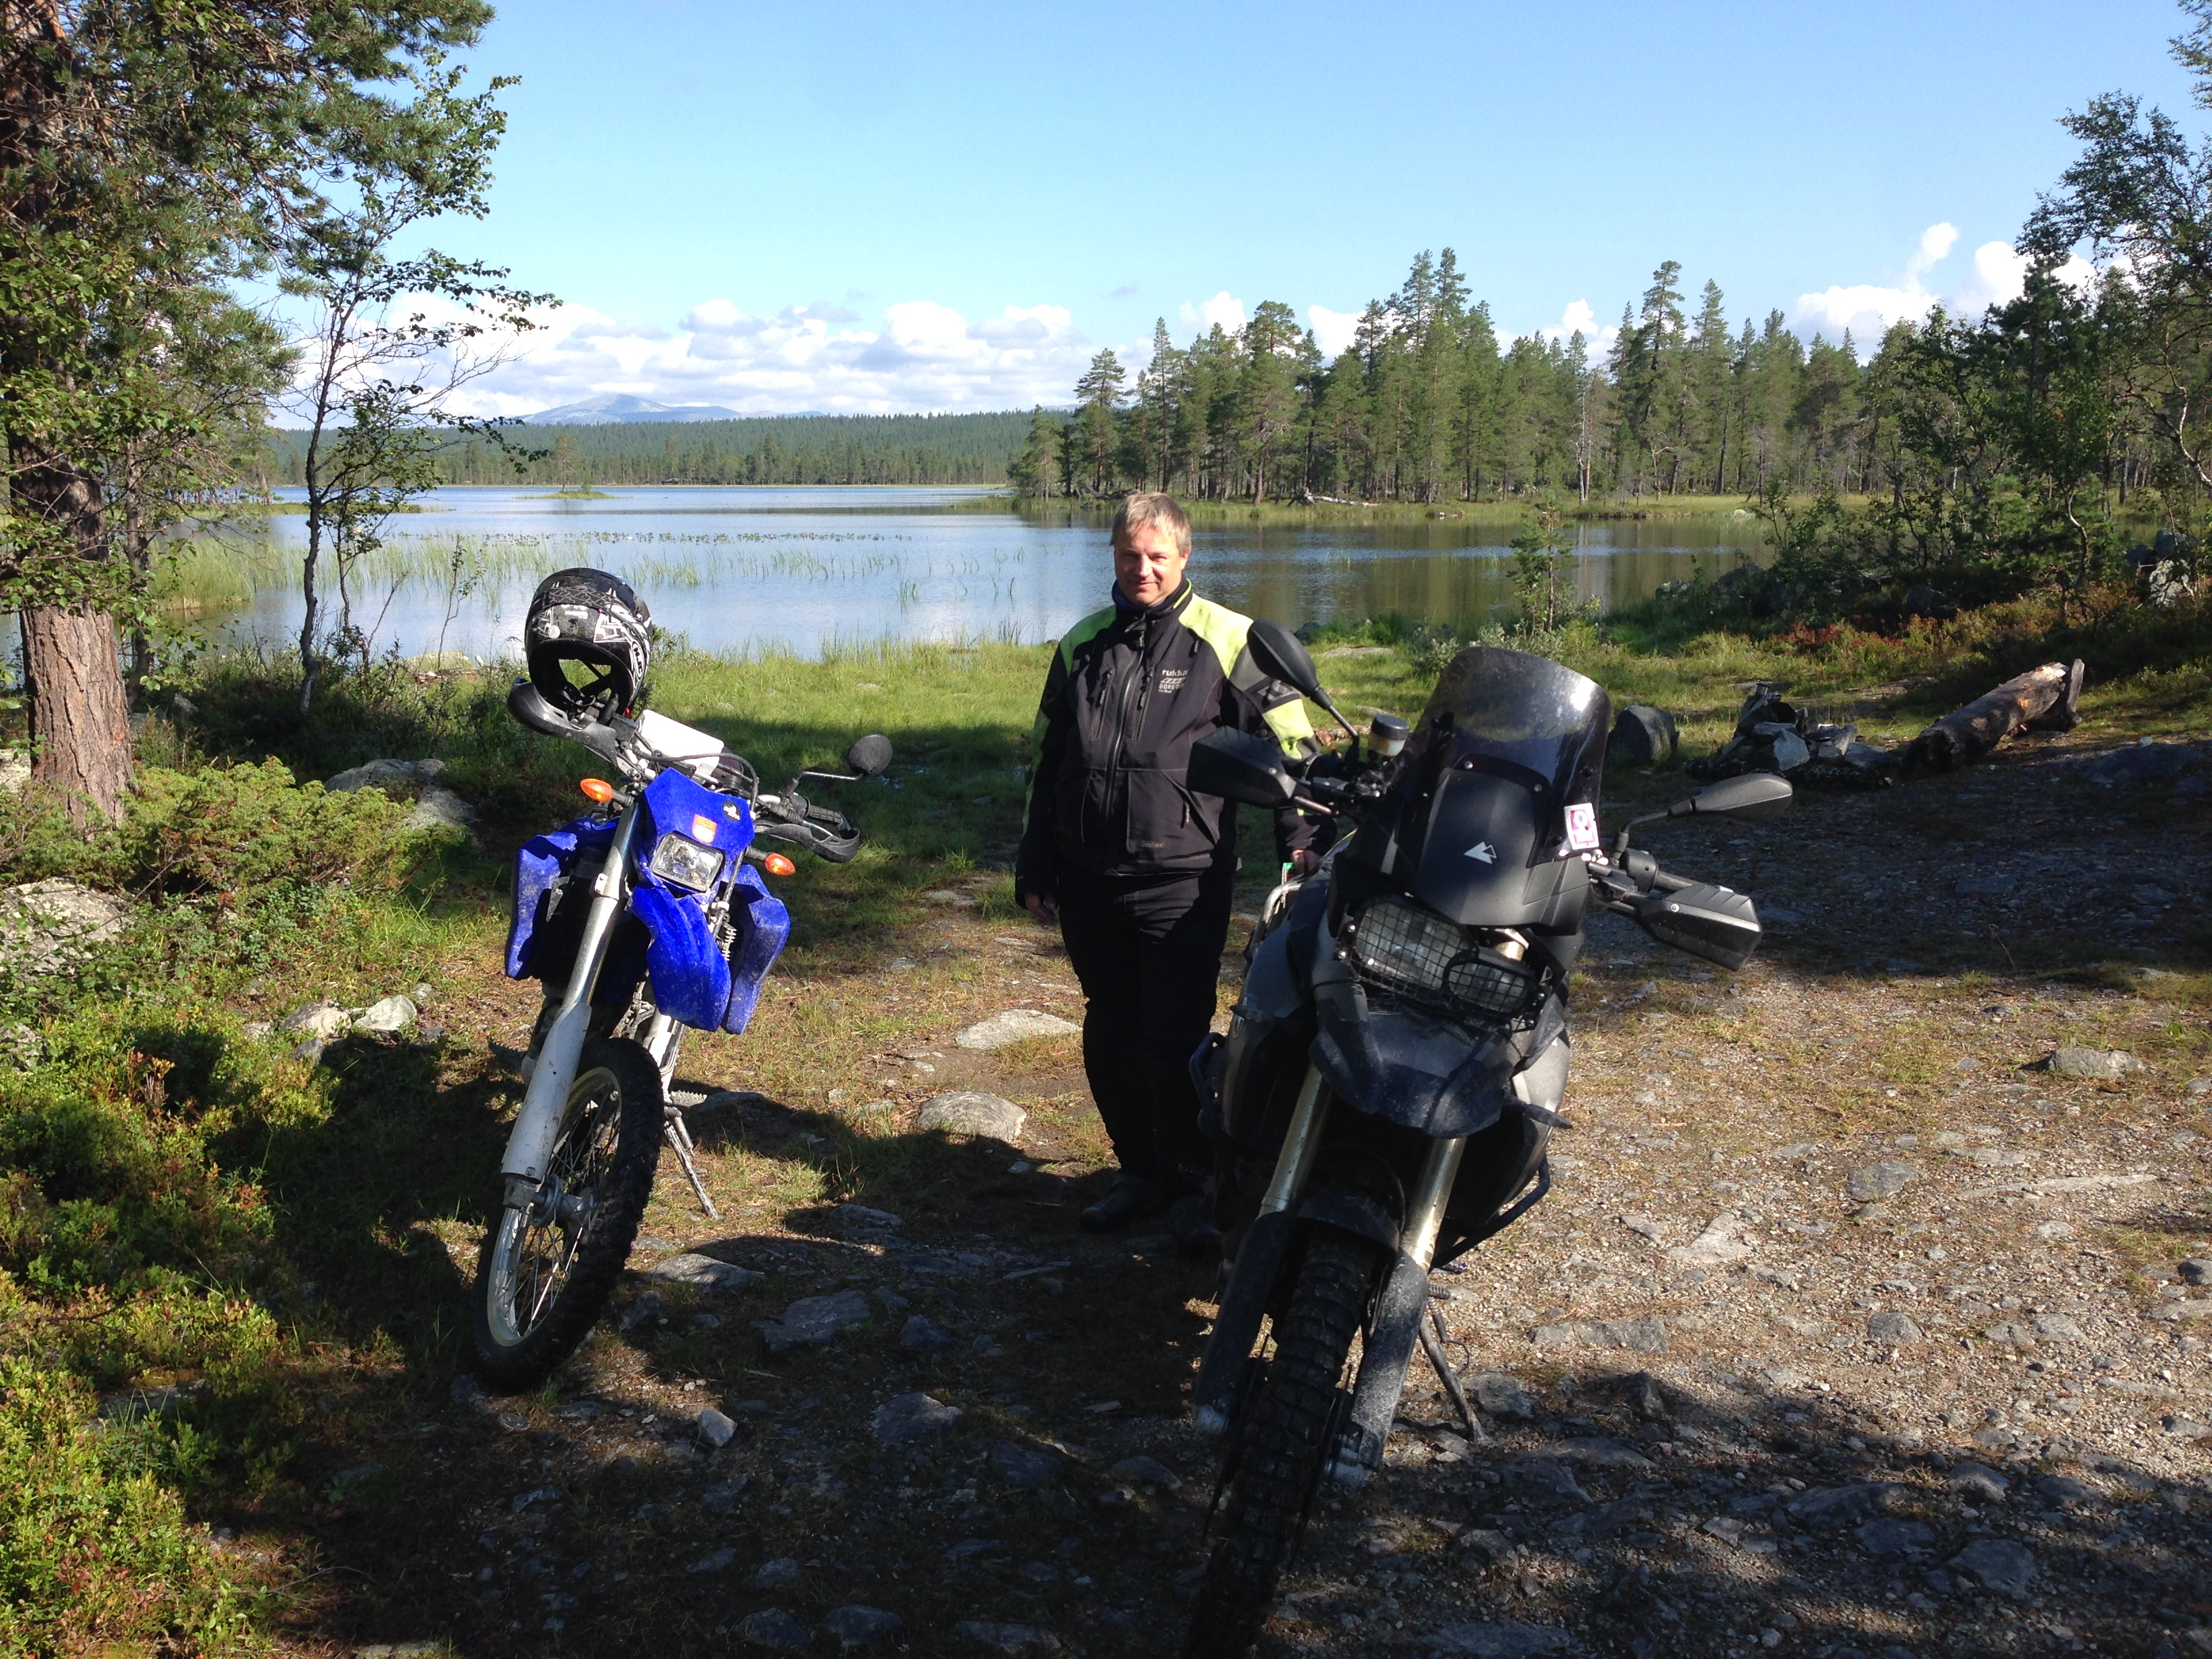 Choosing a smaller capacity, light bike makes it easier to venture to the secluded, nice places in the forest.